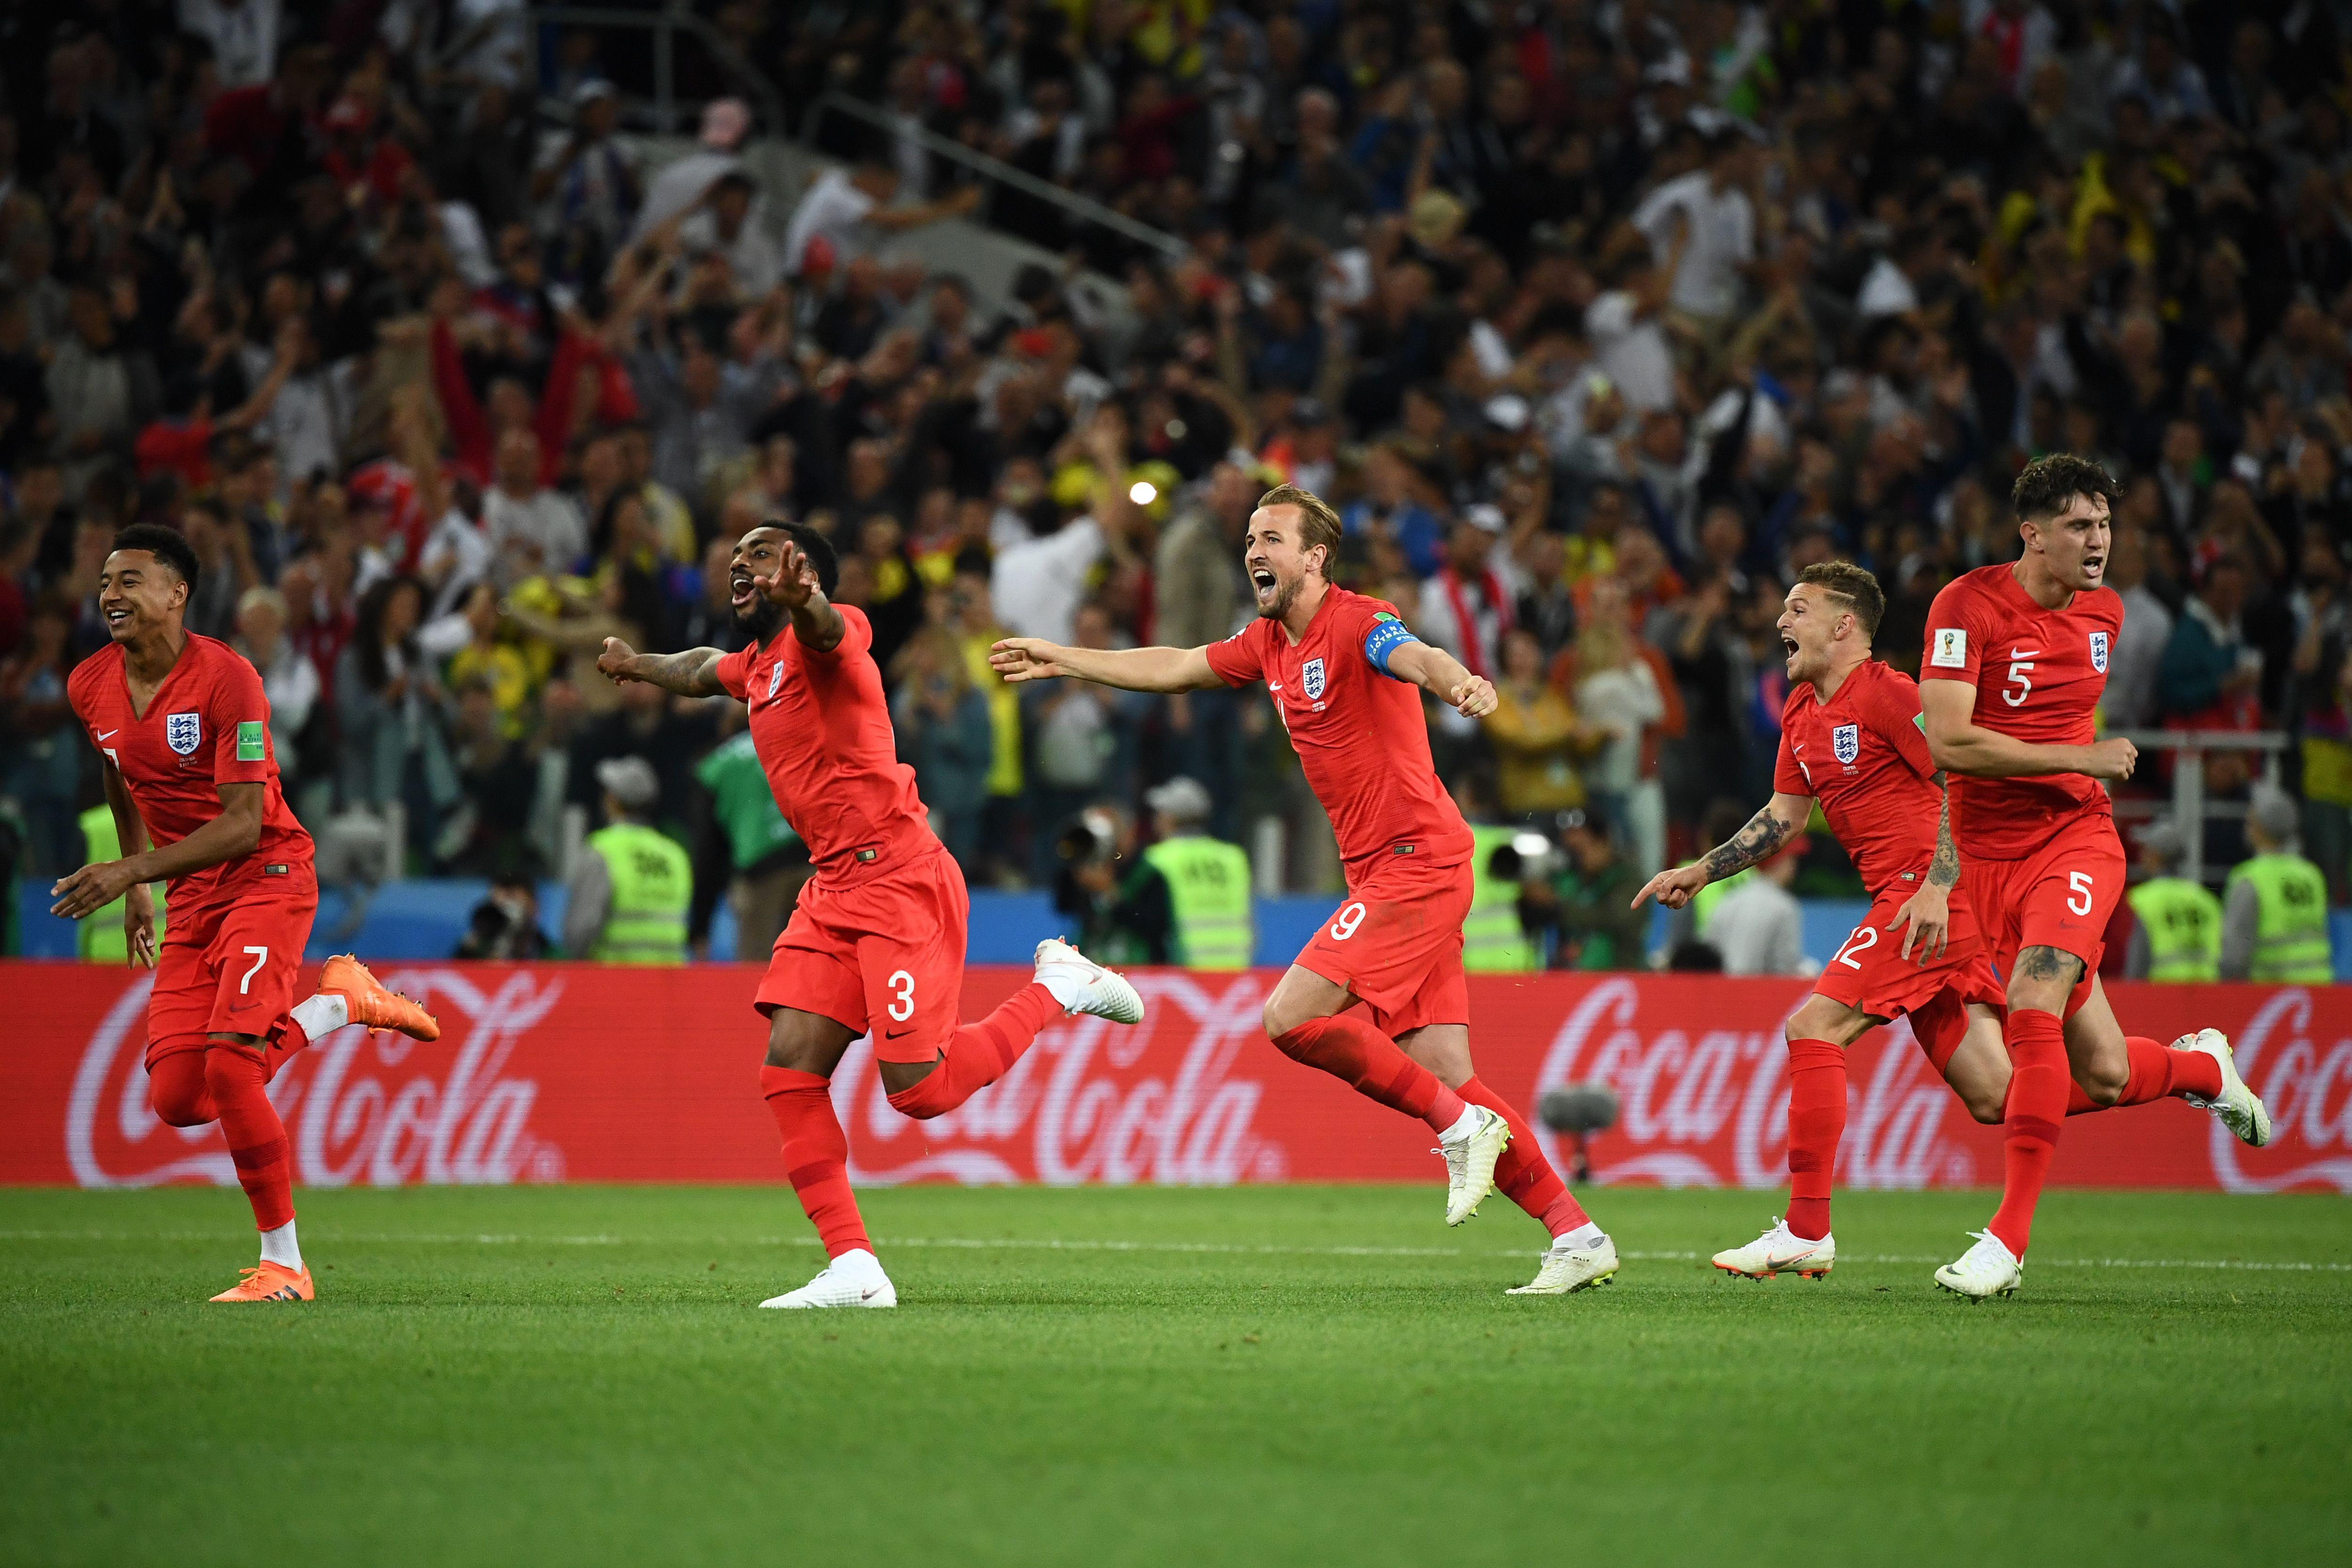 England's team players celebrate after winning against Colombia.